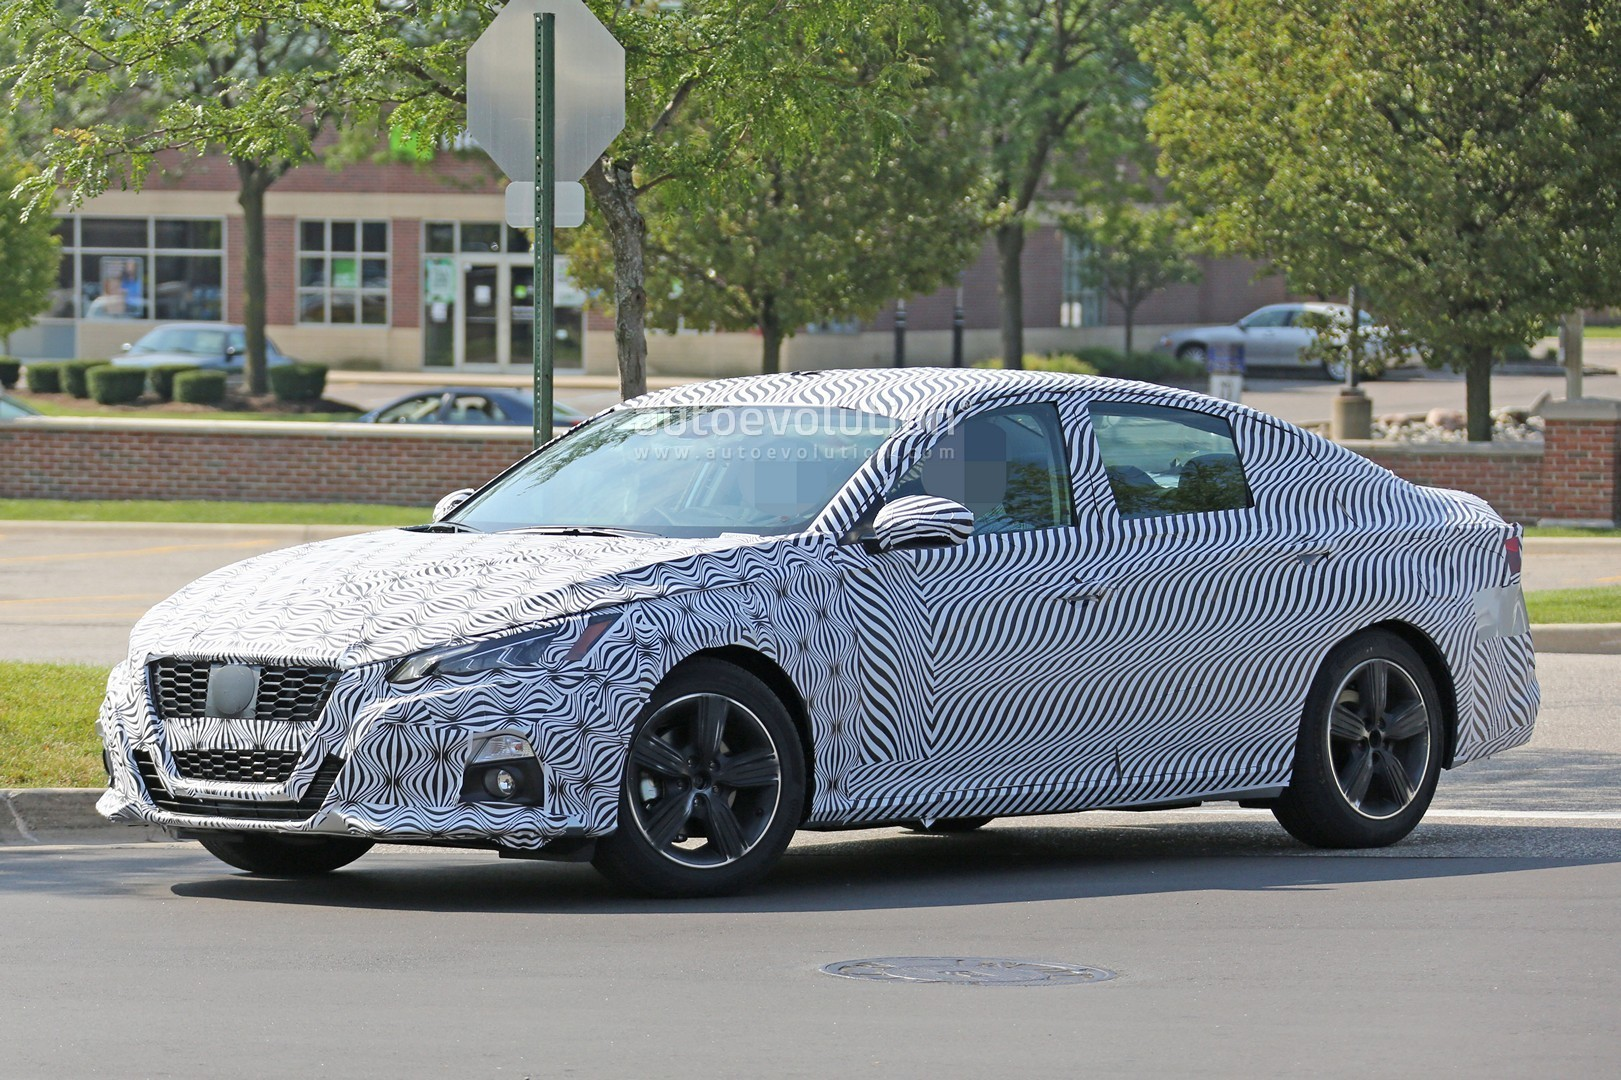 2019 nissan altima spied inside and out is targeting the accord and camry